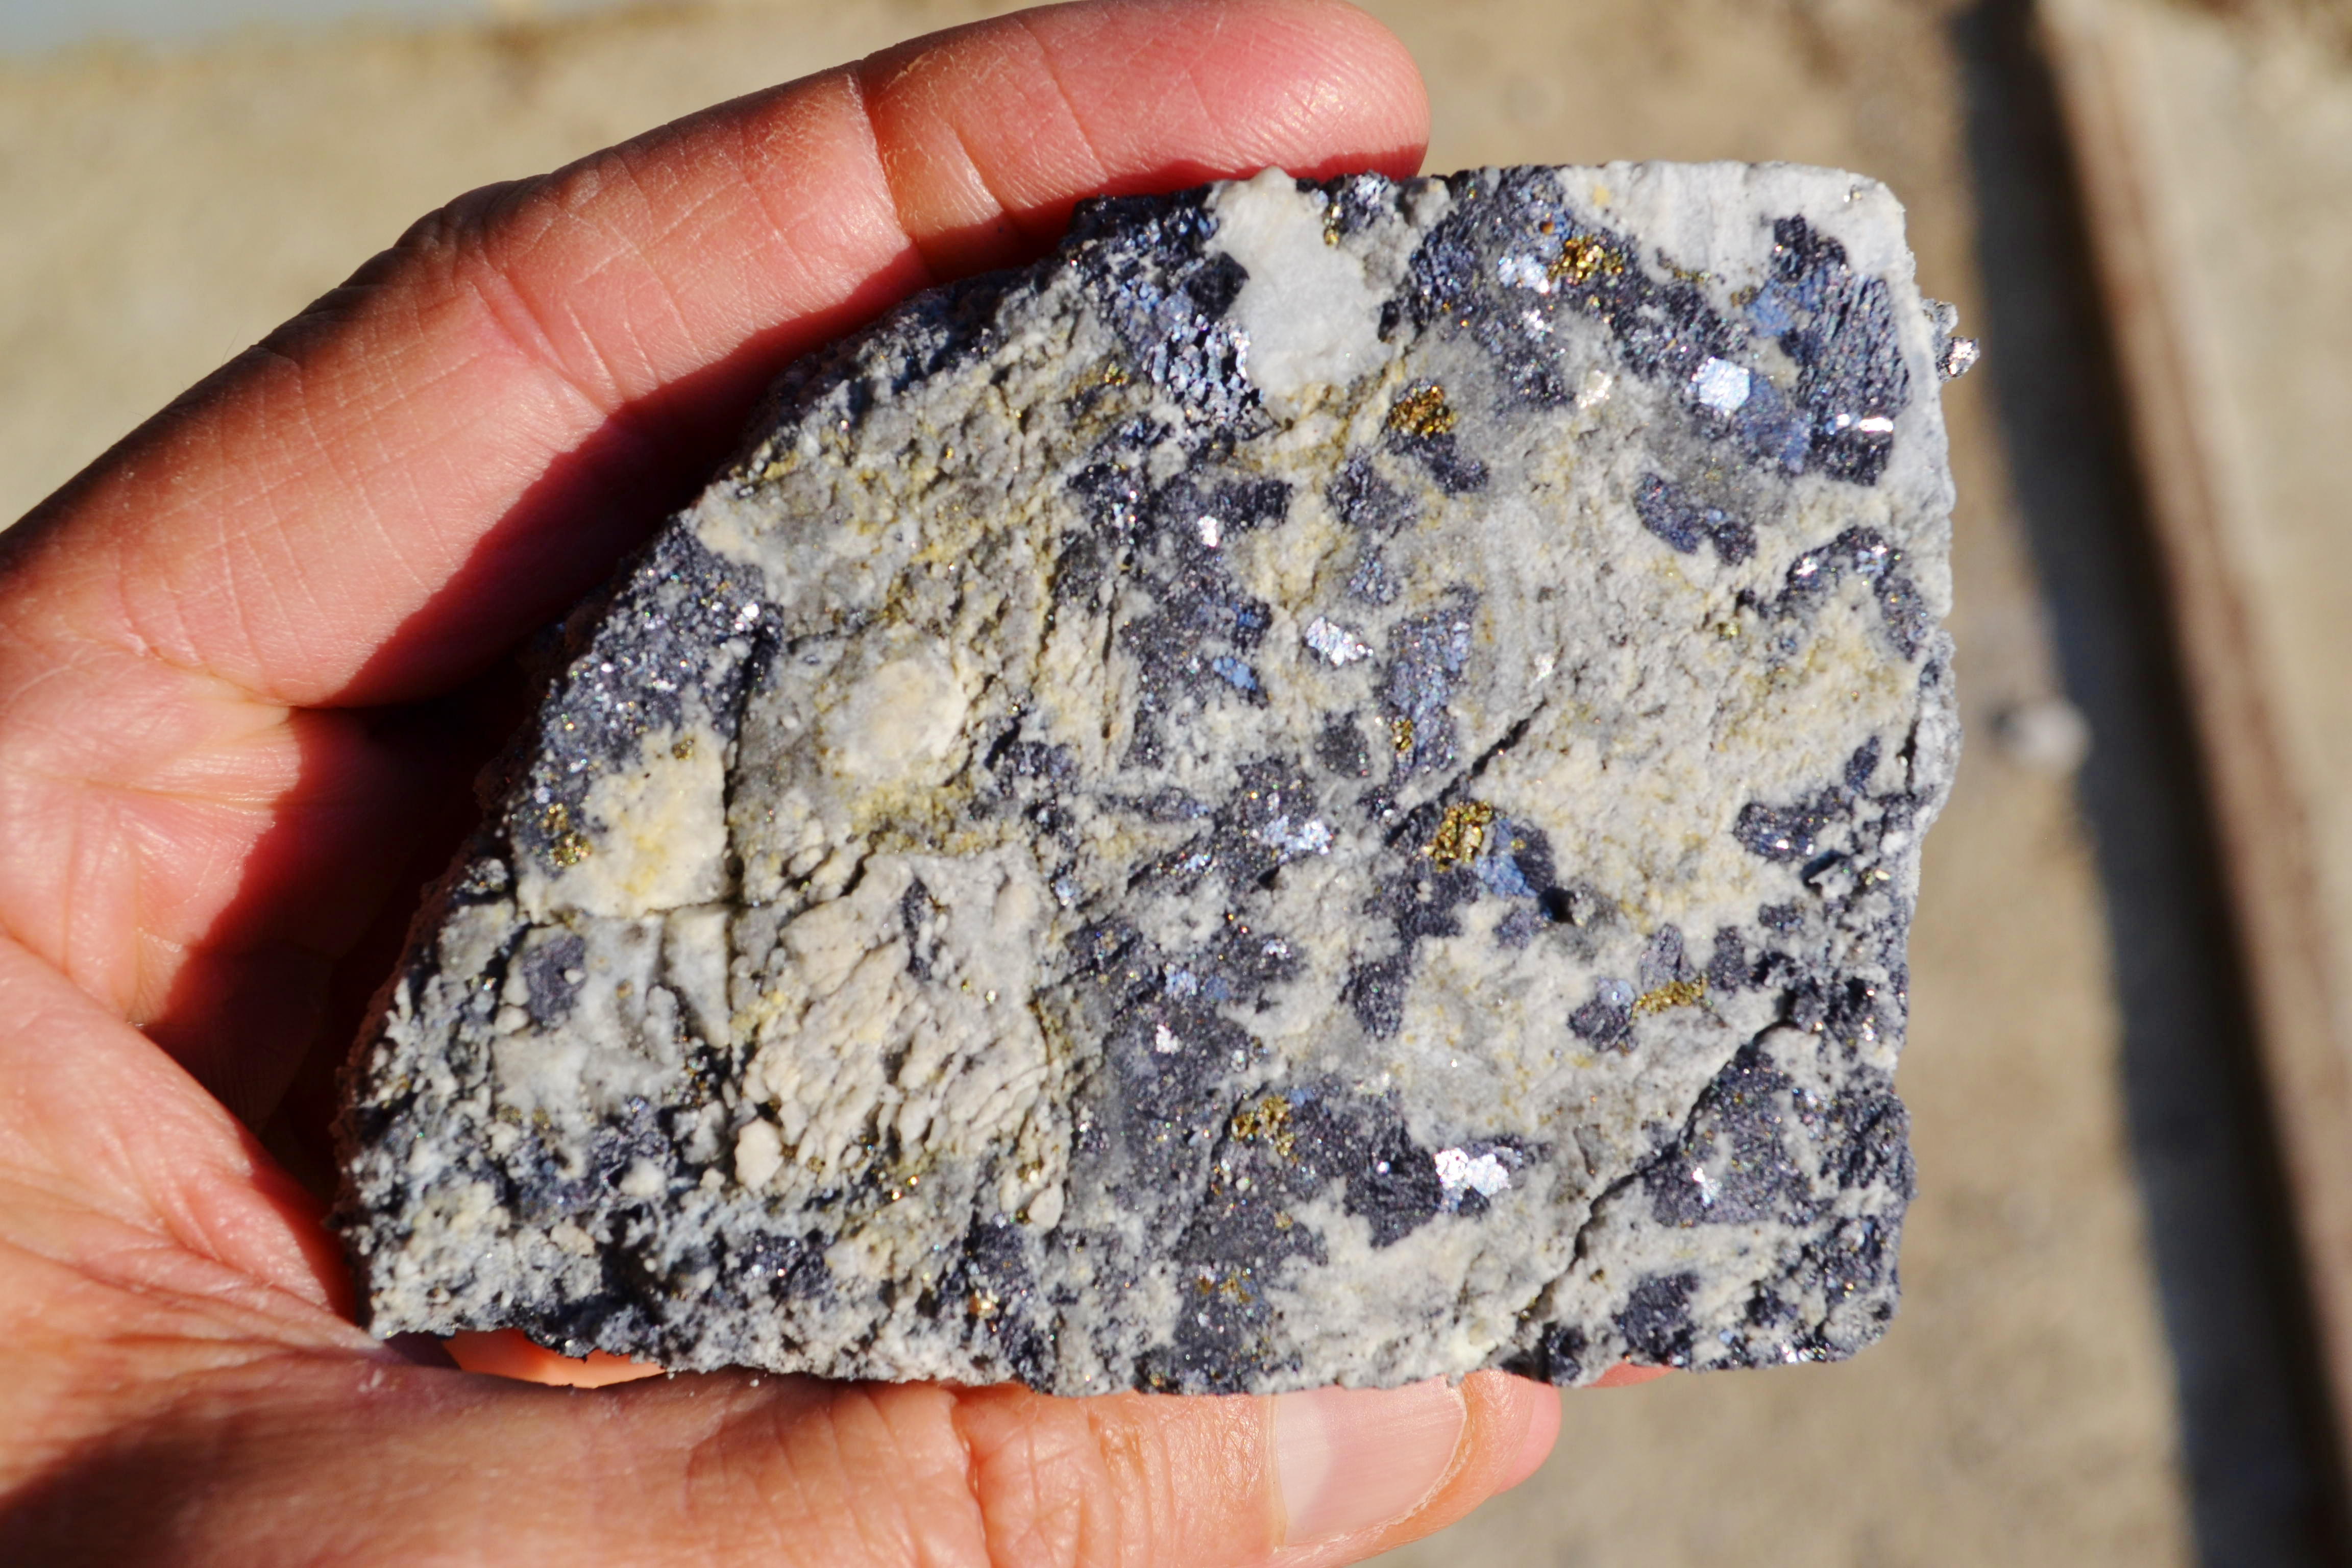 Lead-zinc-silver mineralized core sample from Balya.